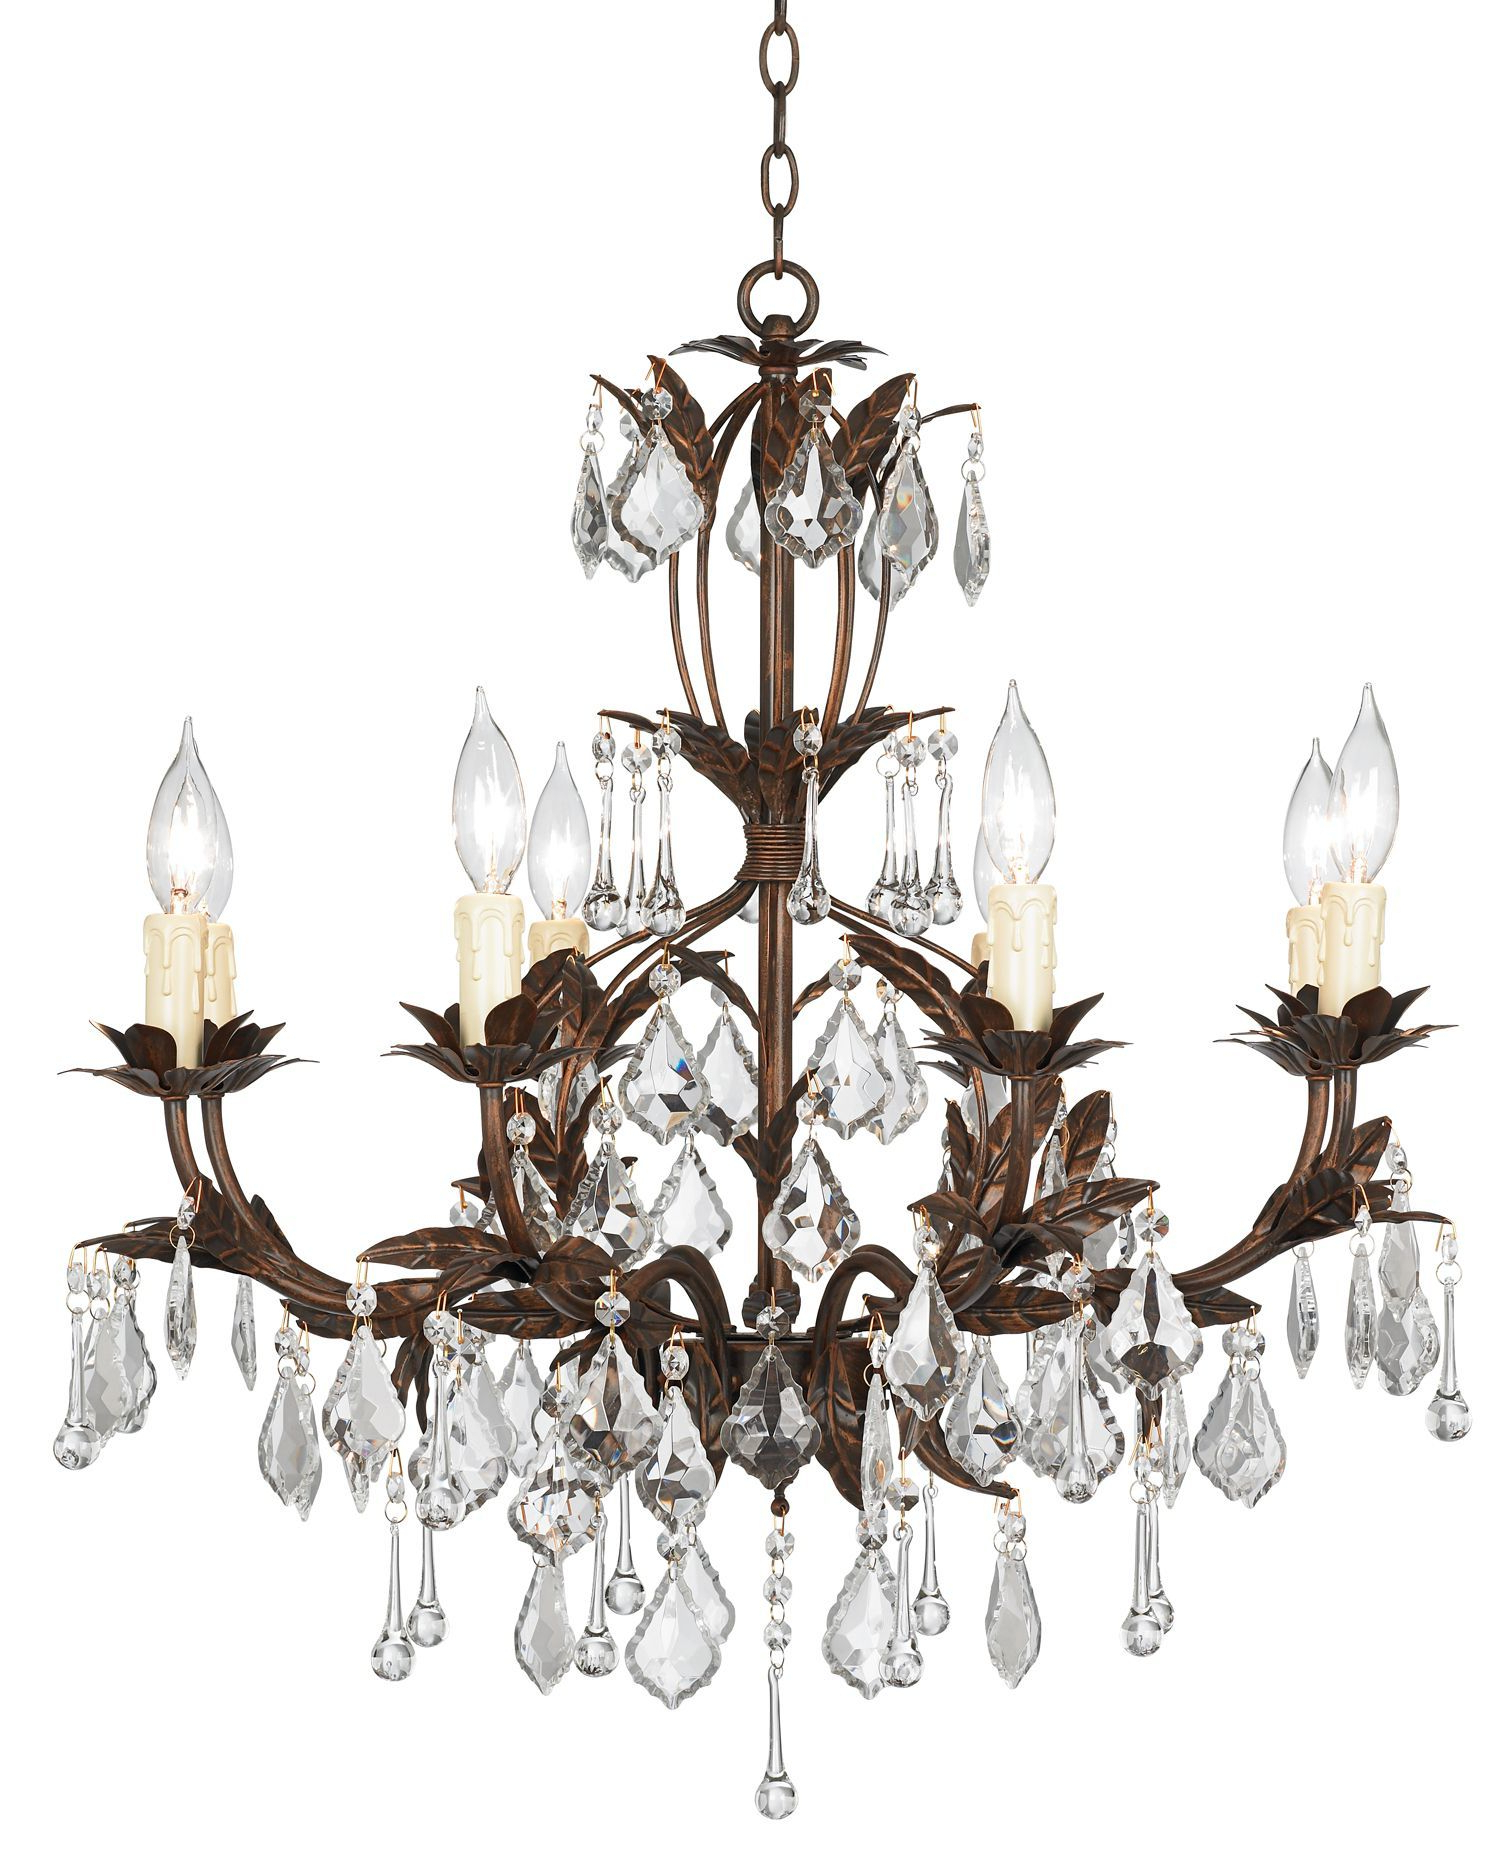 "2020 Hesse 5 Light Candle Style Chandeliers Regarding Kathy Ireland Venezia Bronze 8 Light 26"" Wide Chandelier (View 2 of 20)"